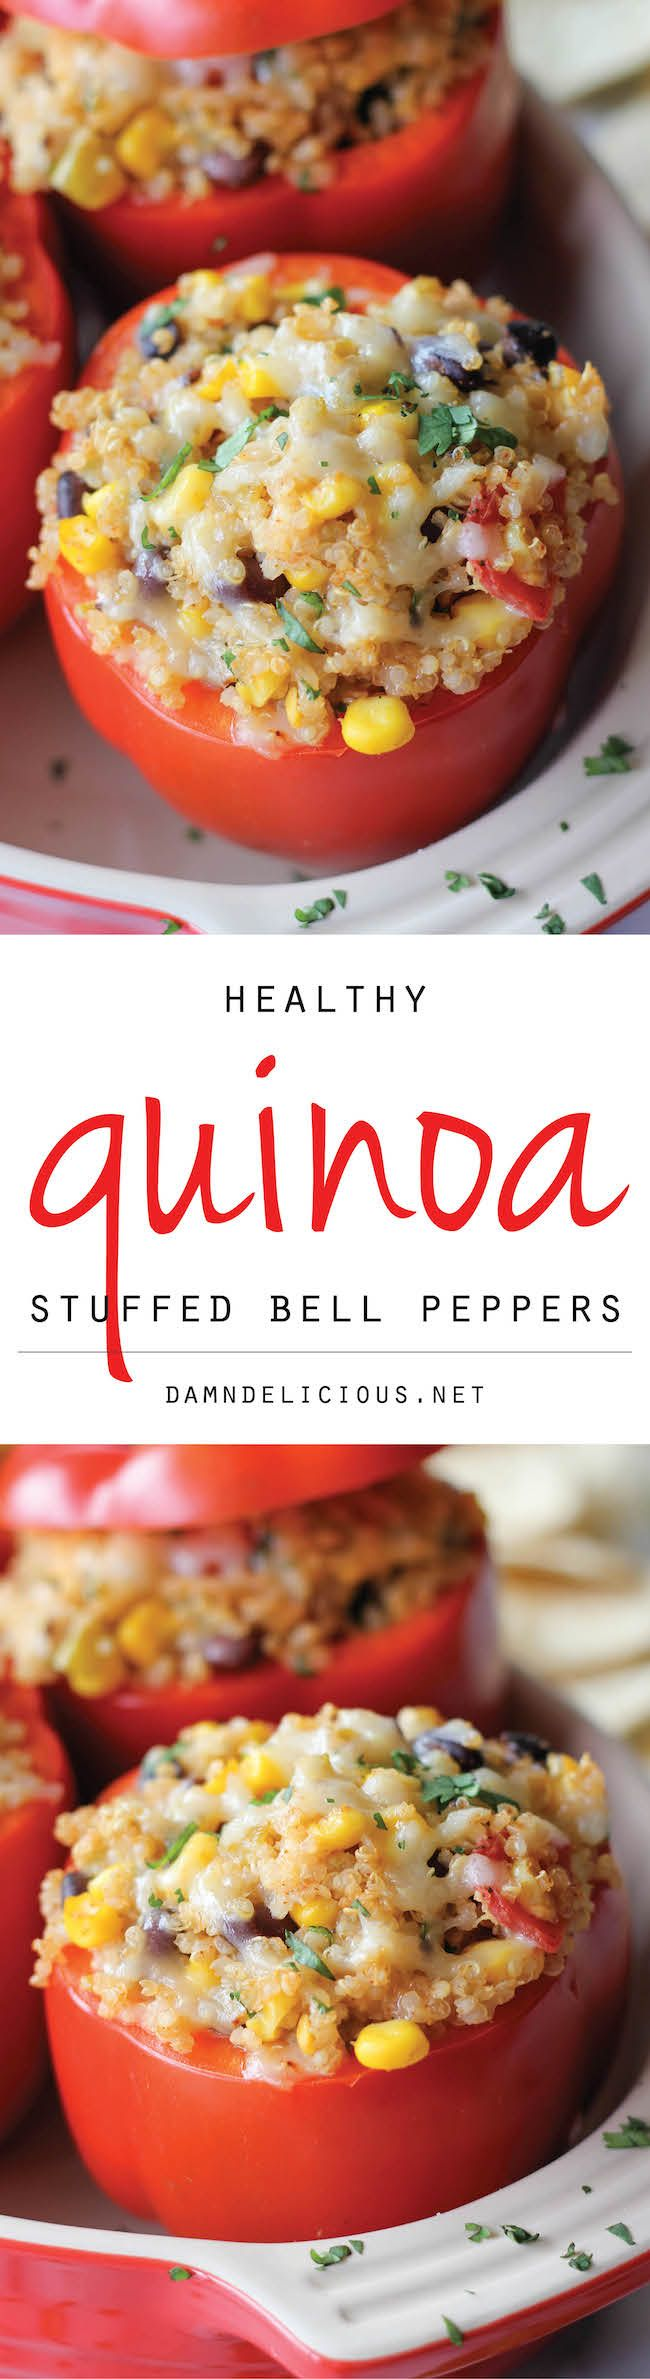 Quinoa Stuffed Bell Peppers - These stuffed bell peppers will provide the nutrition that you need for a healthy, balanced meal!